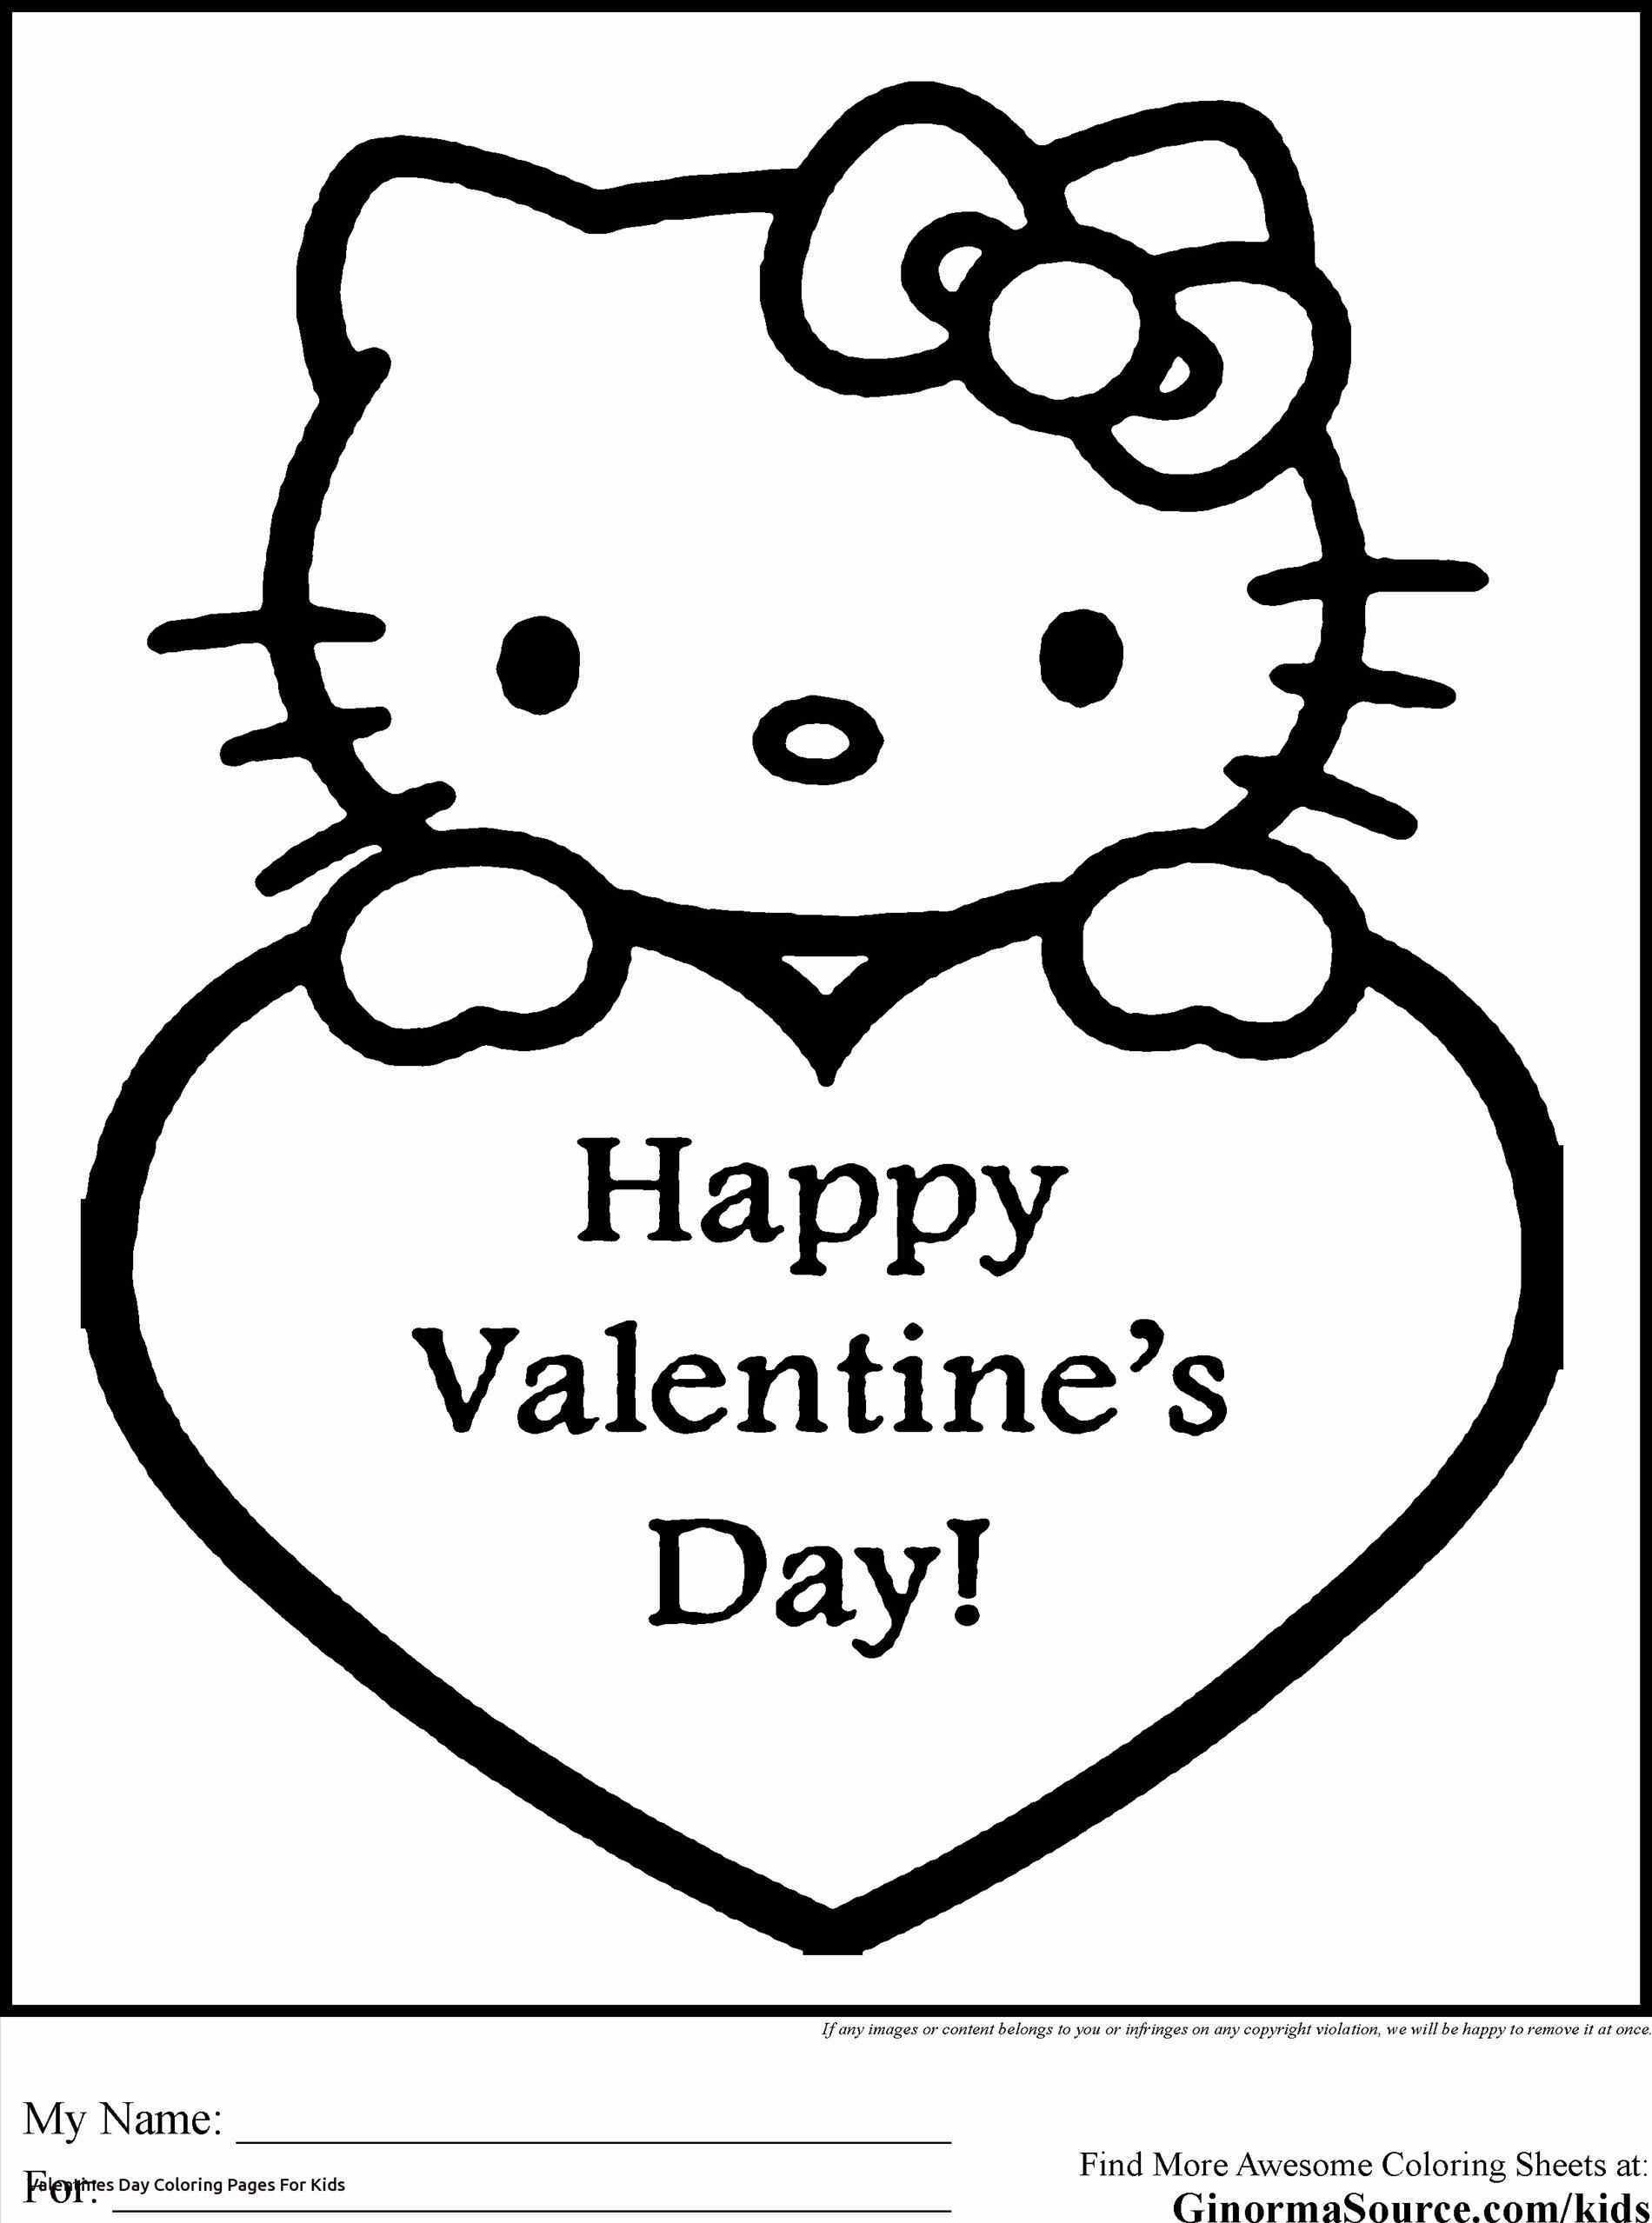 Snoopy Valentines Day Wallpaper Posted By Michelle Sellers